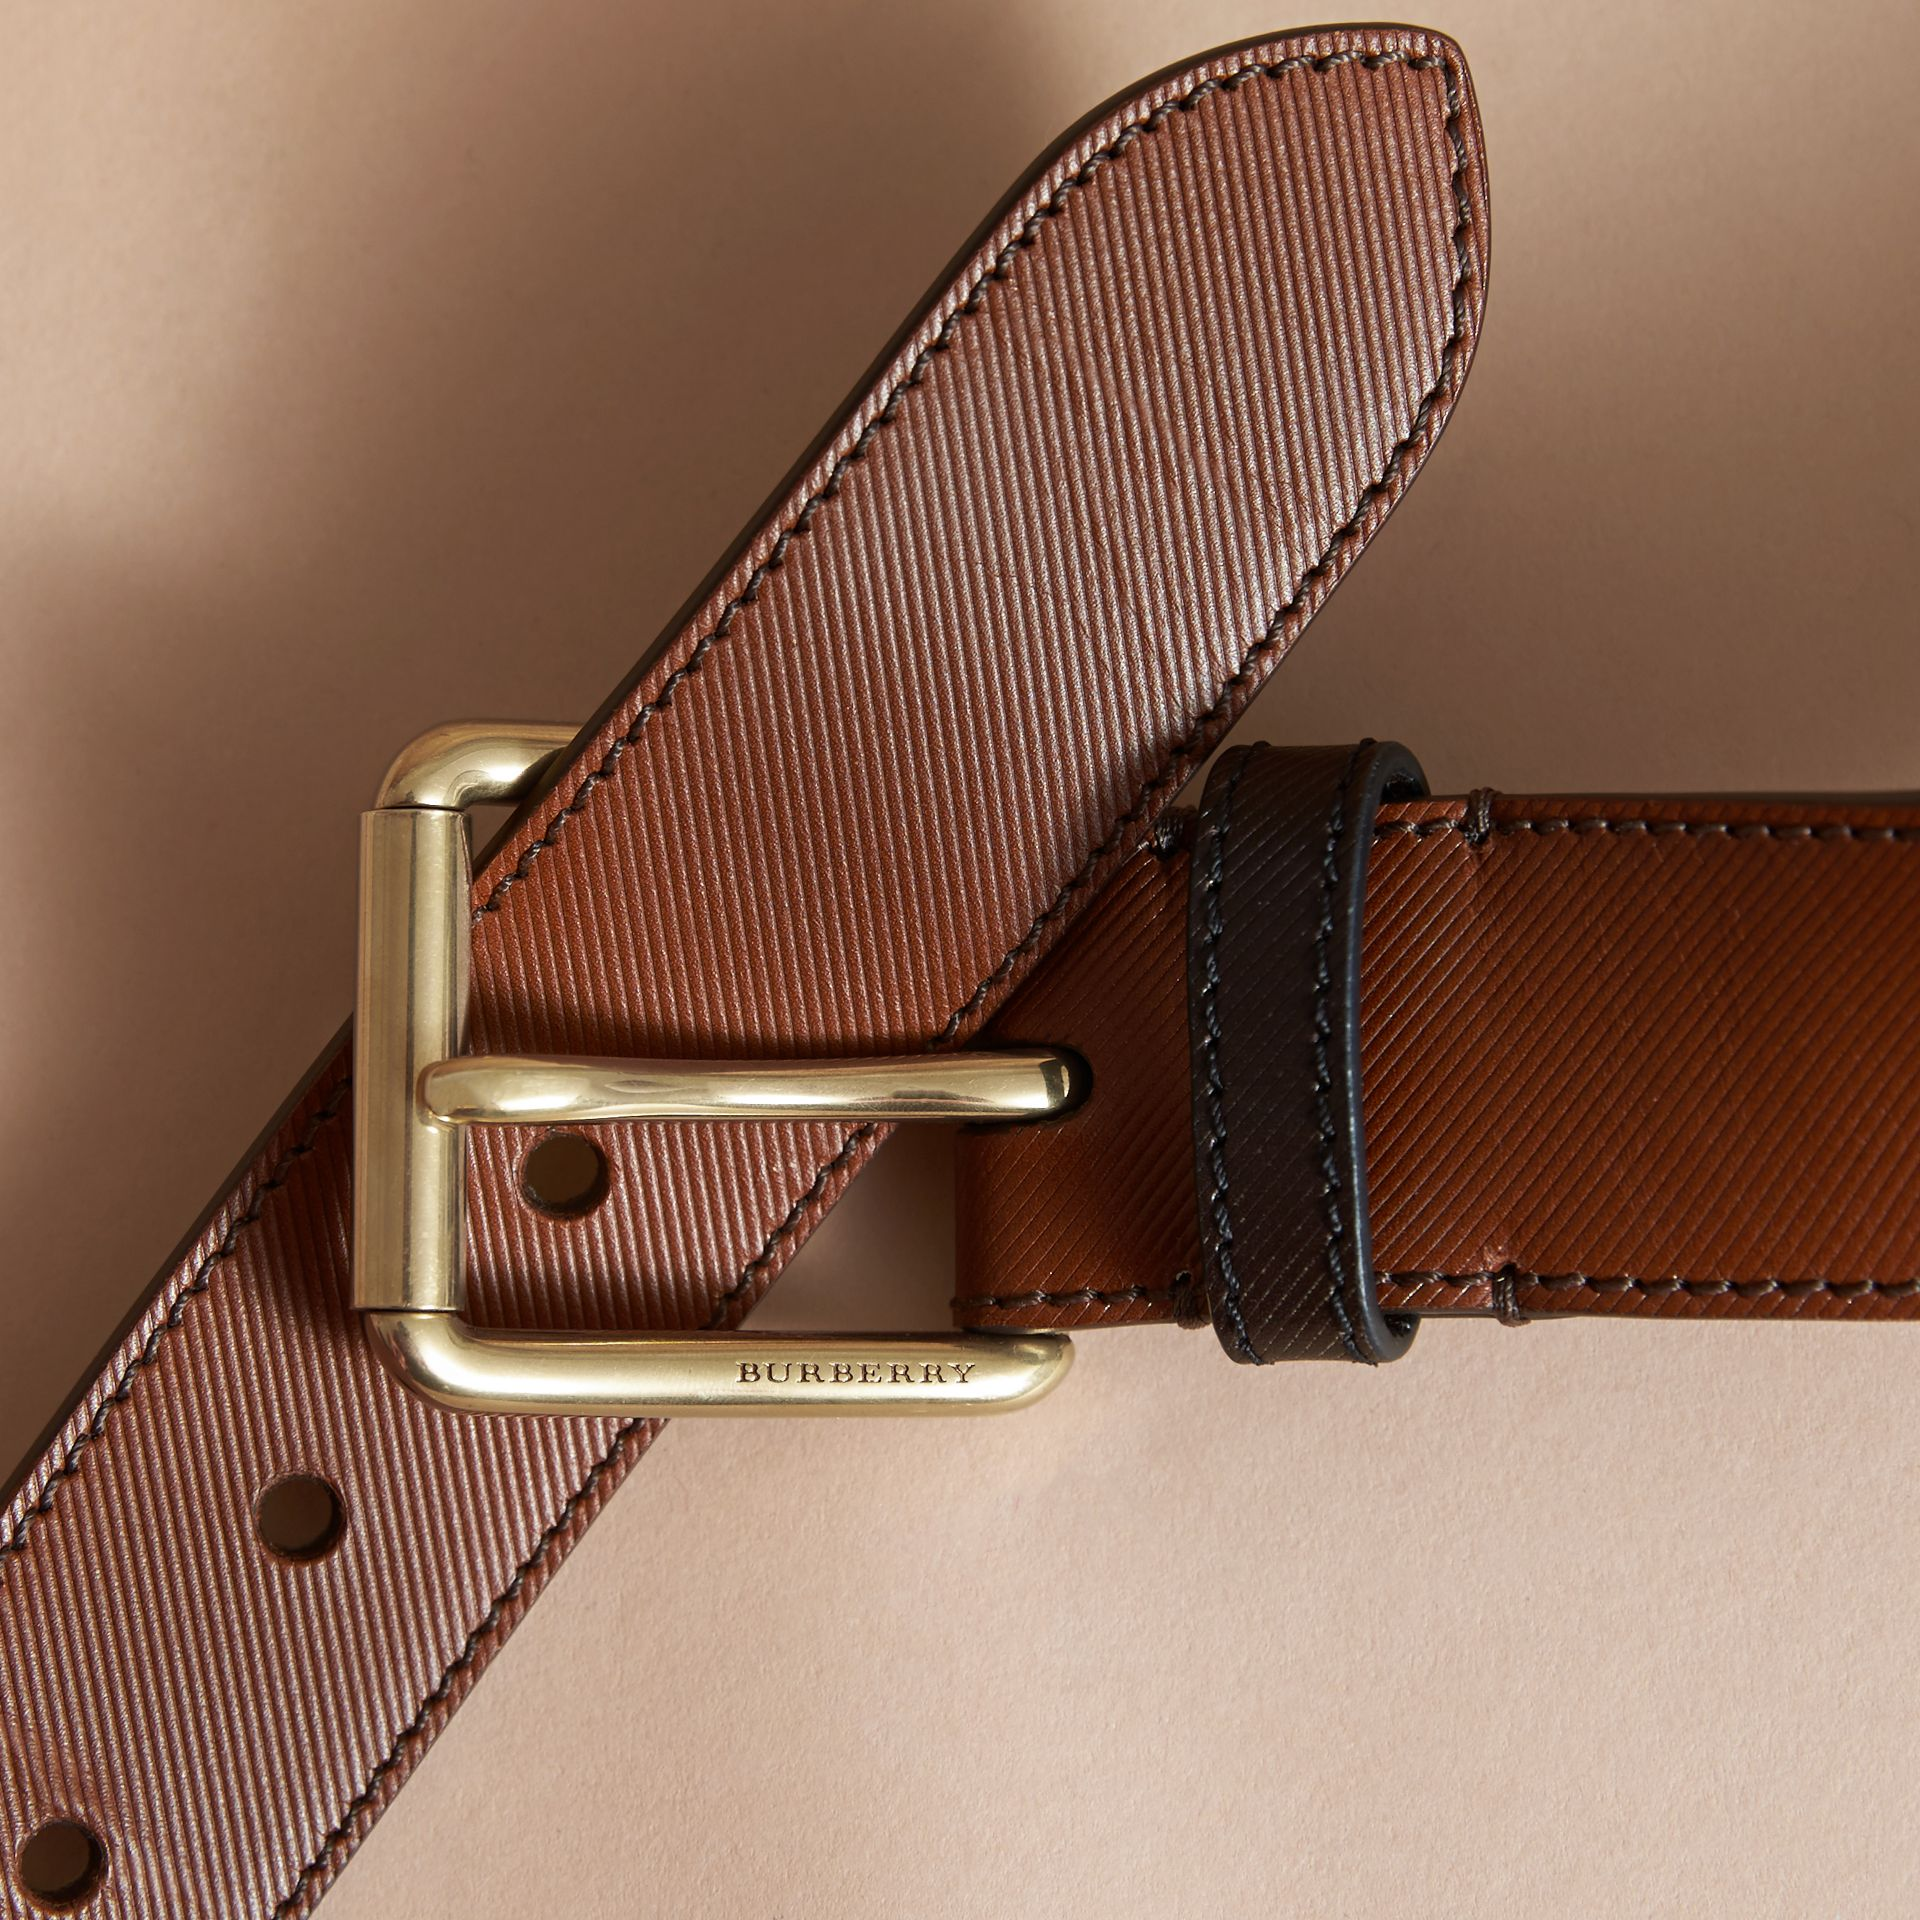 Two-tone Trench Leather Belt in Tan - Men | Burberry - gallery image 2